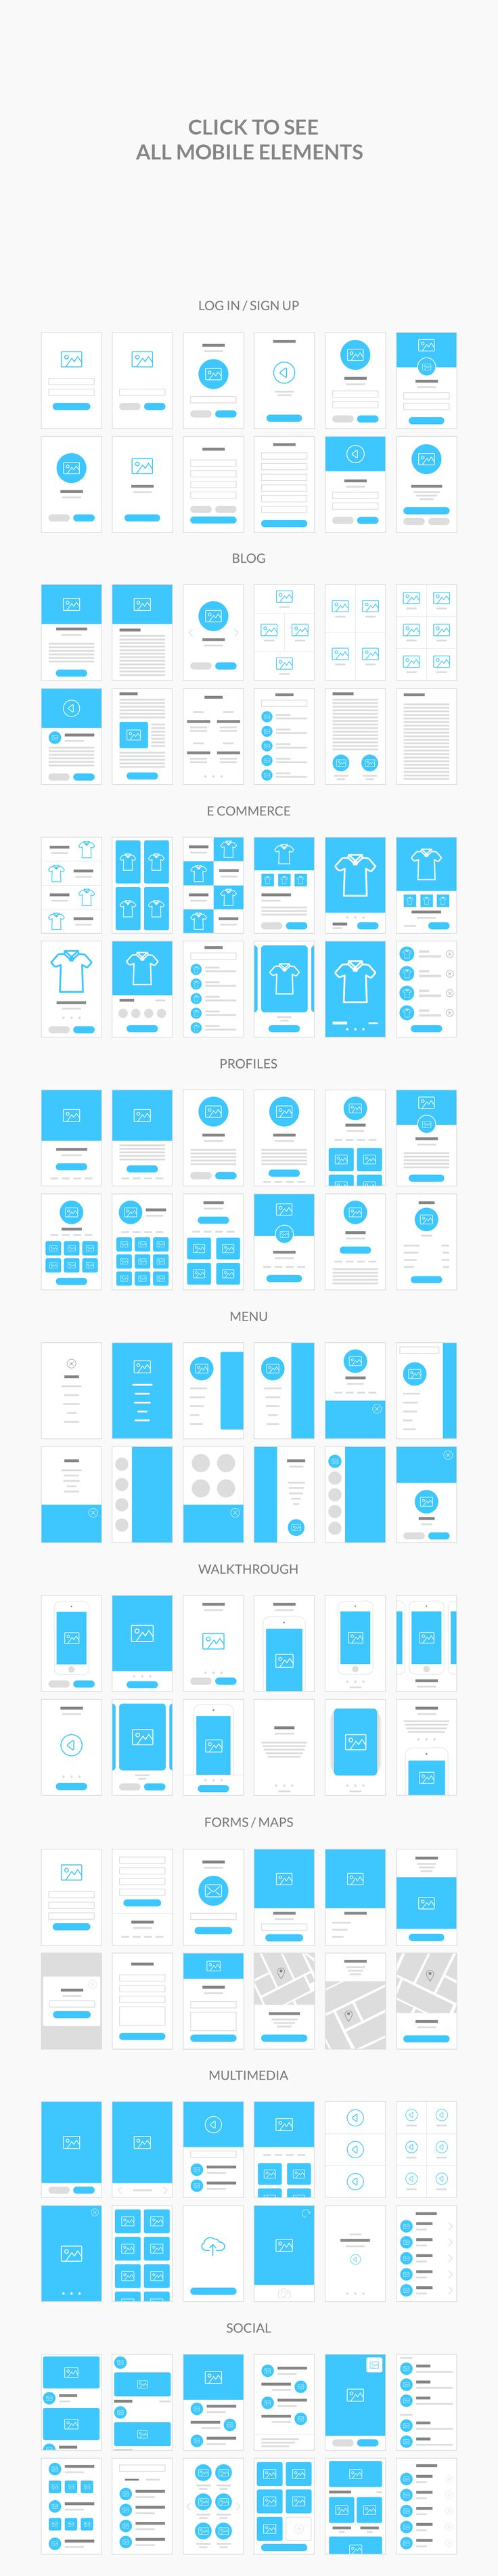 Flowy  by Web Donut on @creativemarket. If you like UX, design, or design thinking, check out theuxblog.com